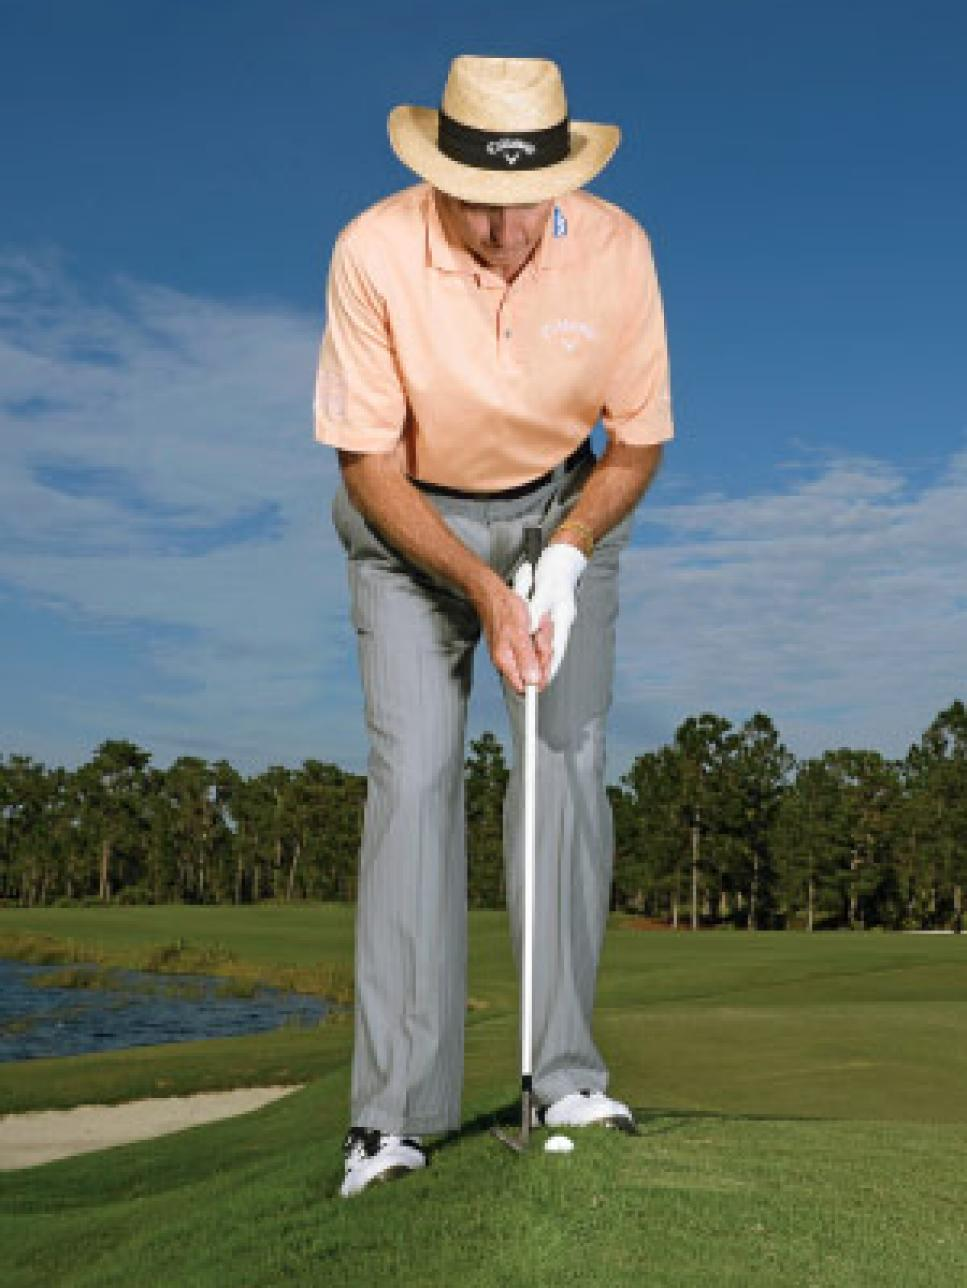 instruction-2014-05-inar01-david-leadbetter-wedge.jpg